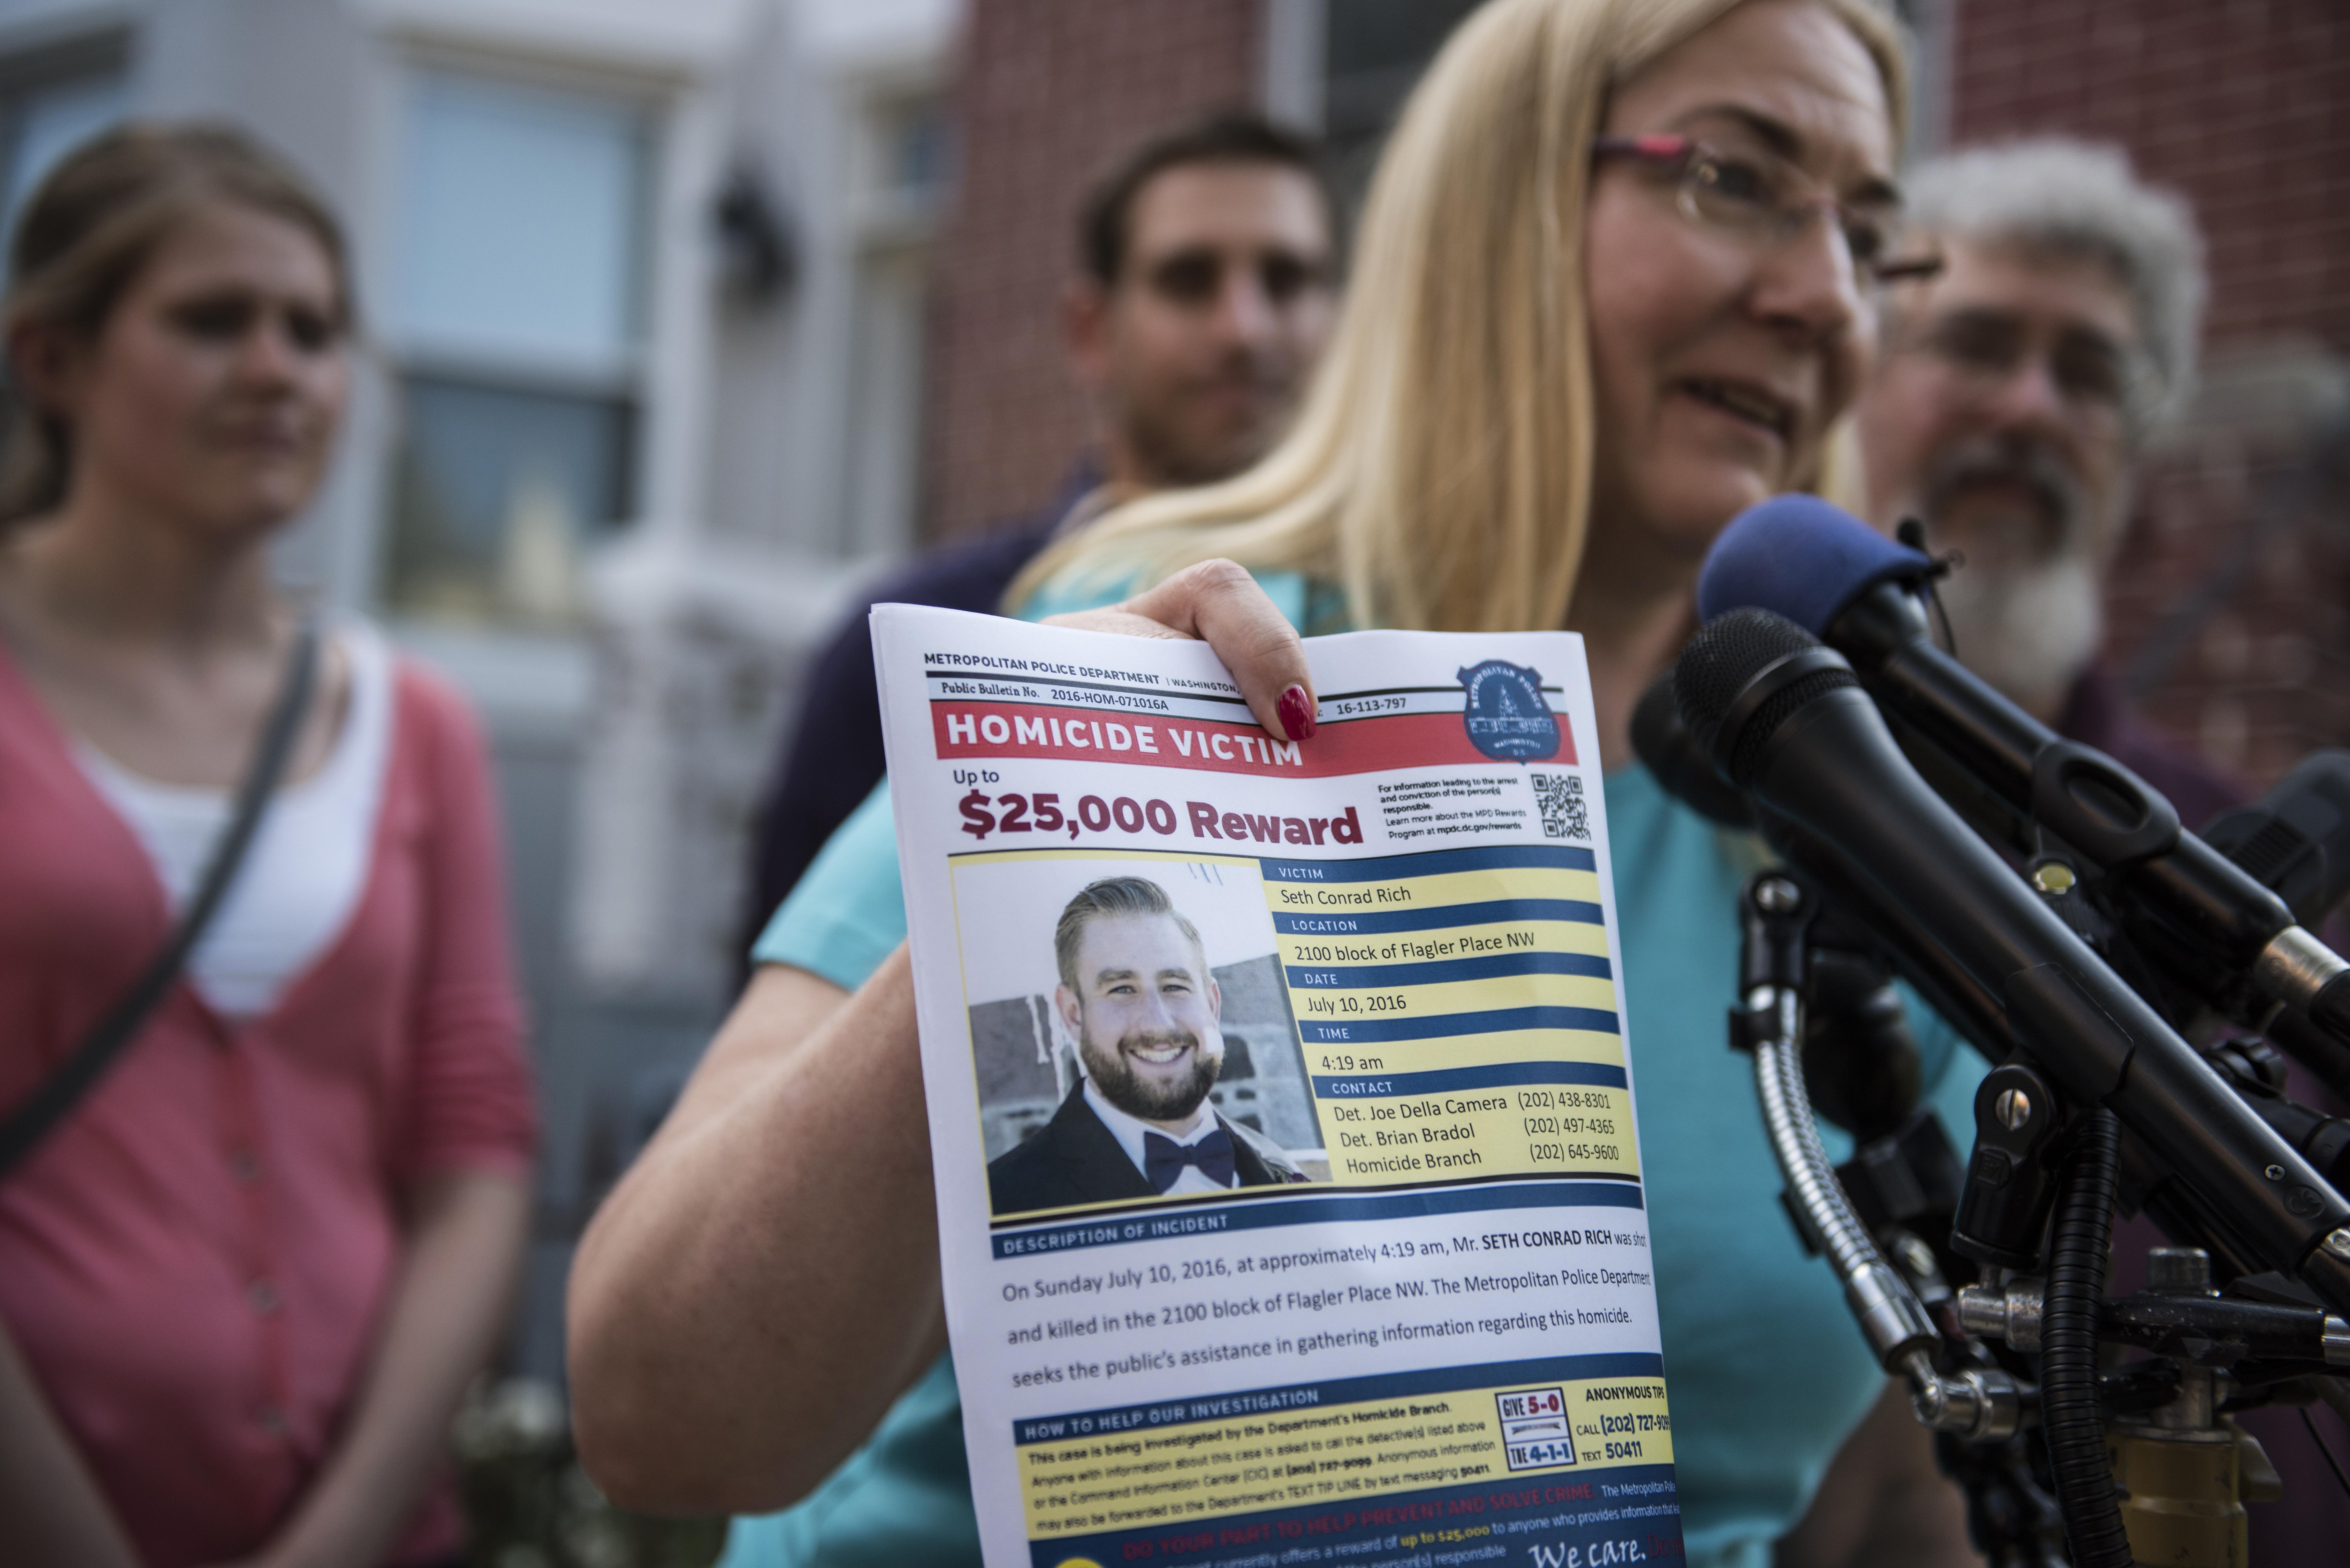 Mary Rich, the mother of slain DNC staffer Seth Rich, gives a press conference in Bloomingdale on August 1, 2016.